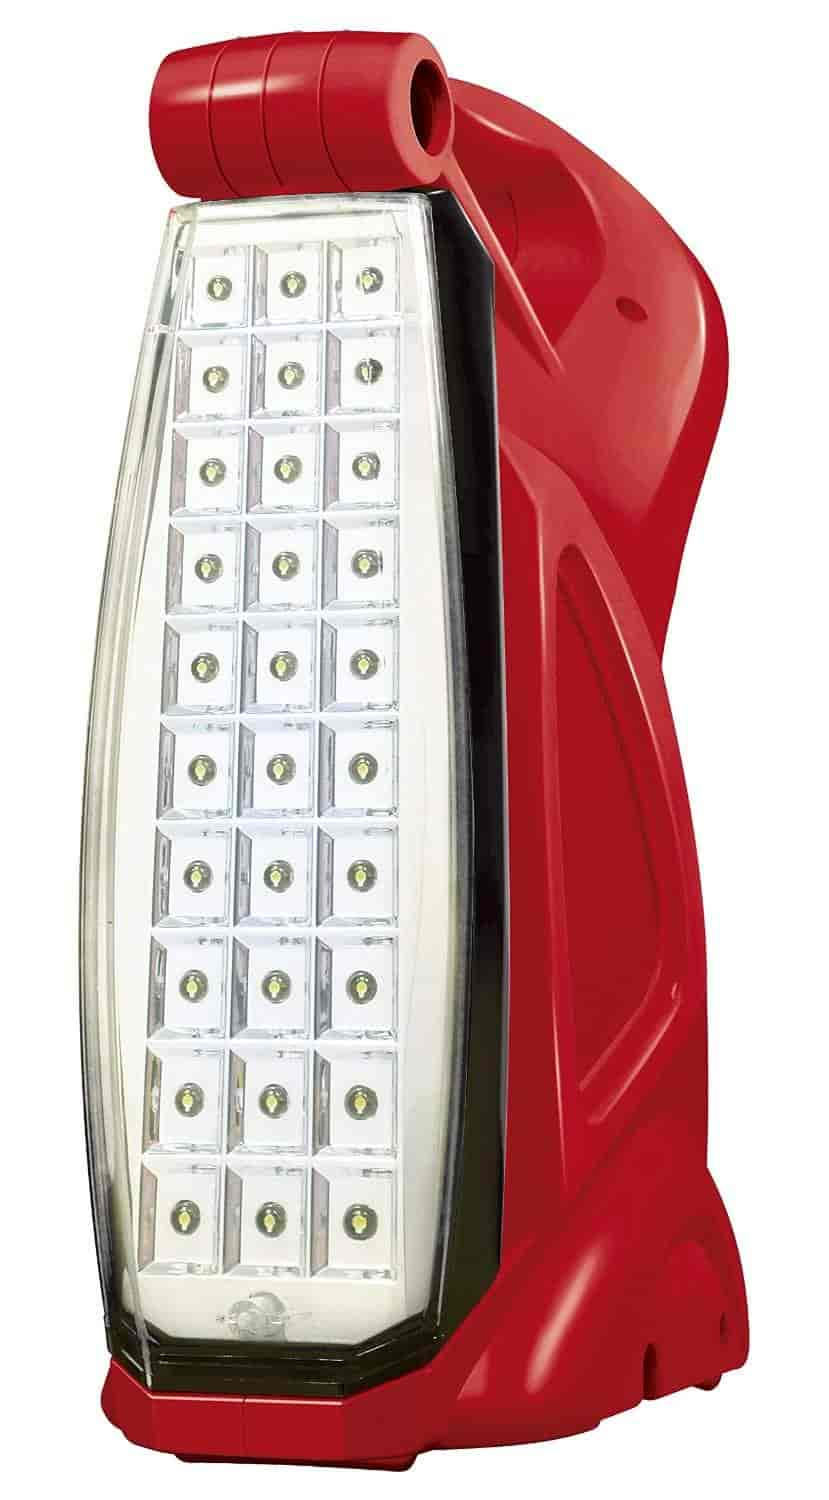 Buy Eveready HL52 39-LEDs Rechargeable Home Light (Red), Features ...